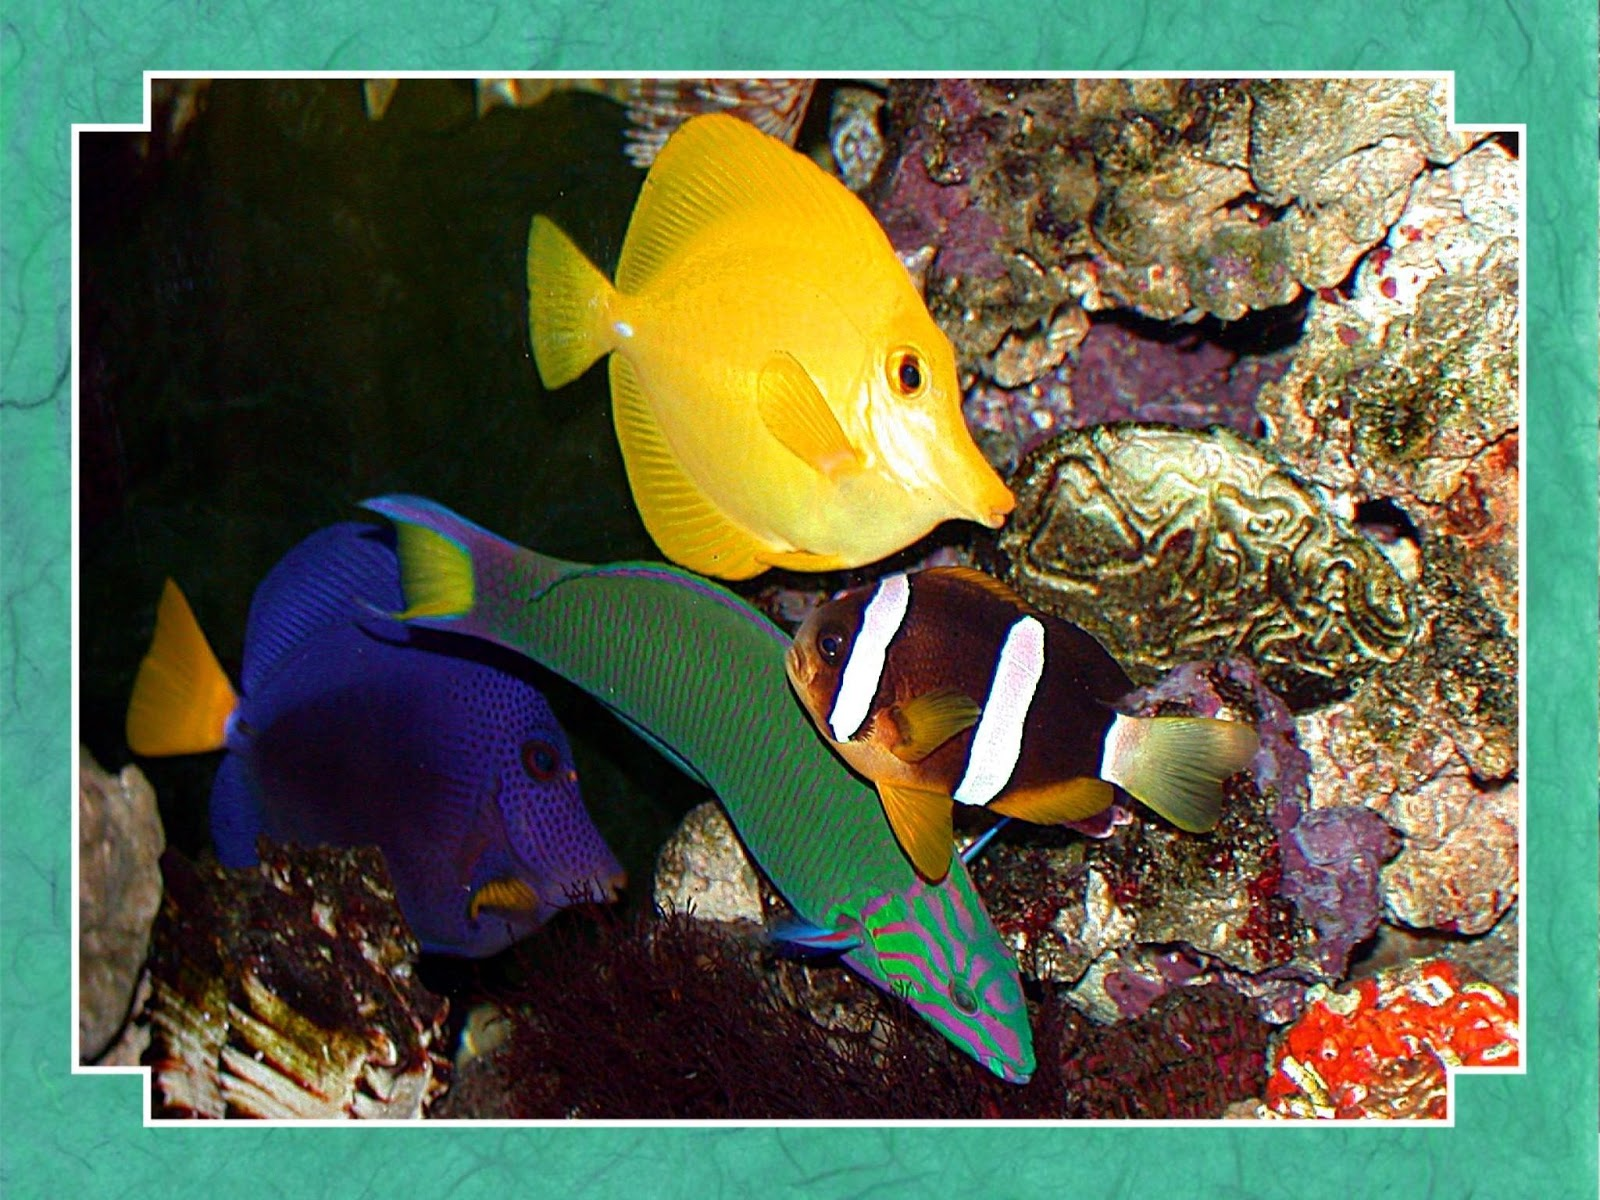 Free Wallpaper Download: Tropical Fish Wallpaper,Pictures ...